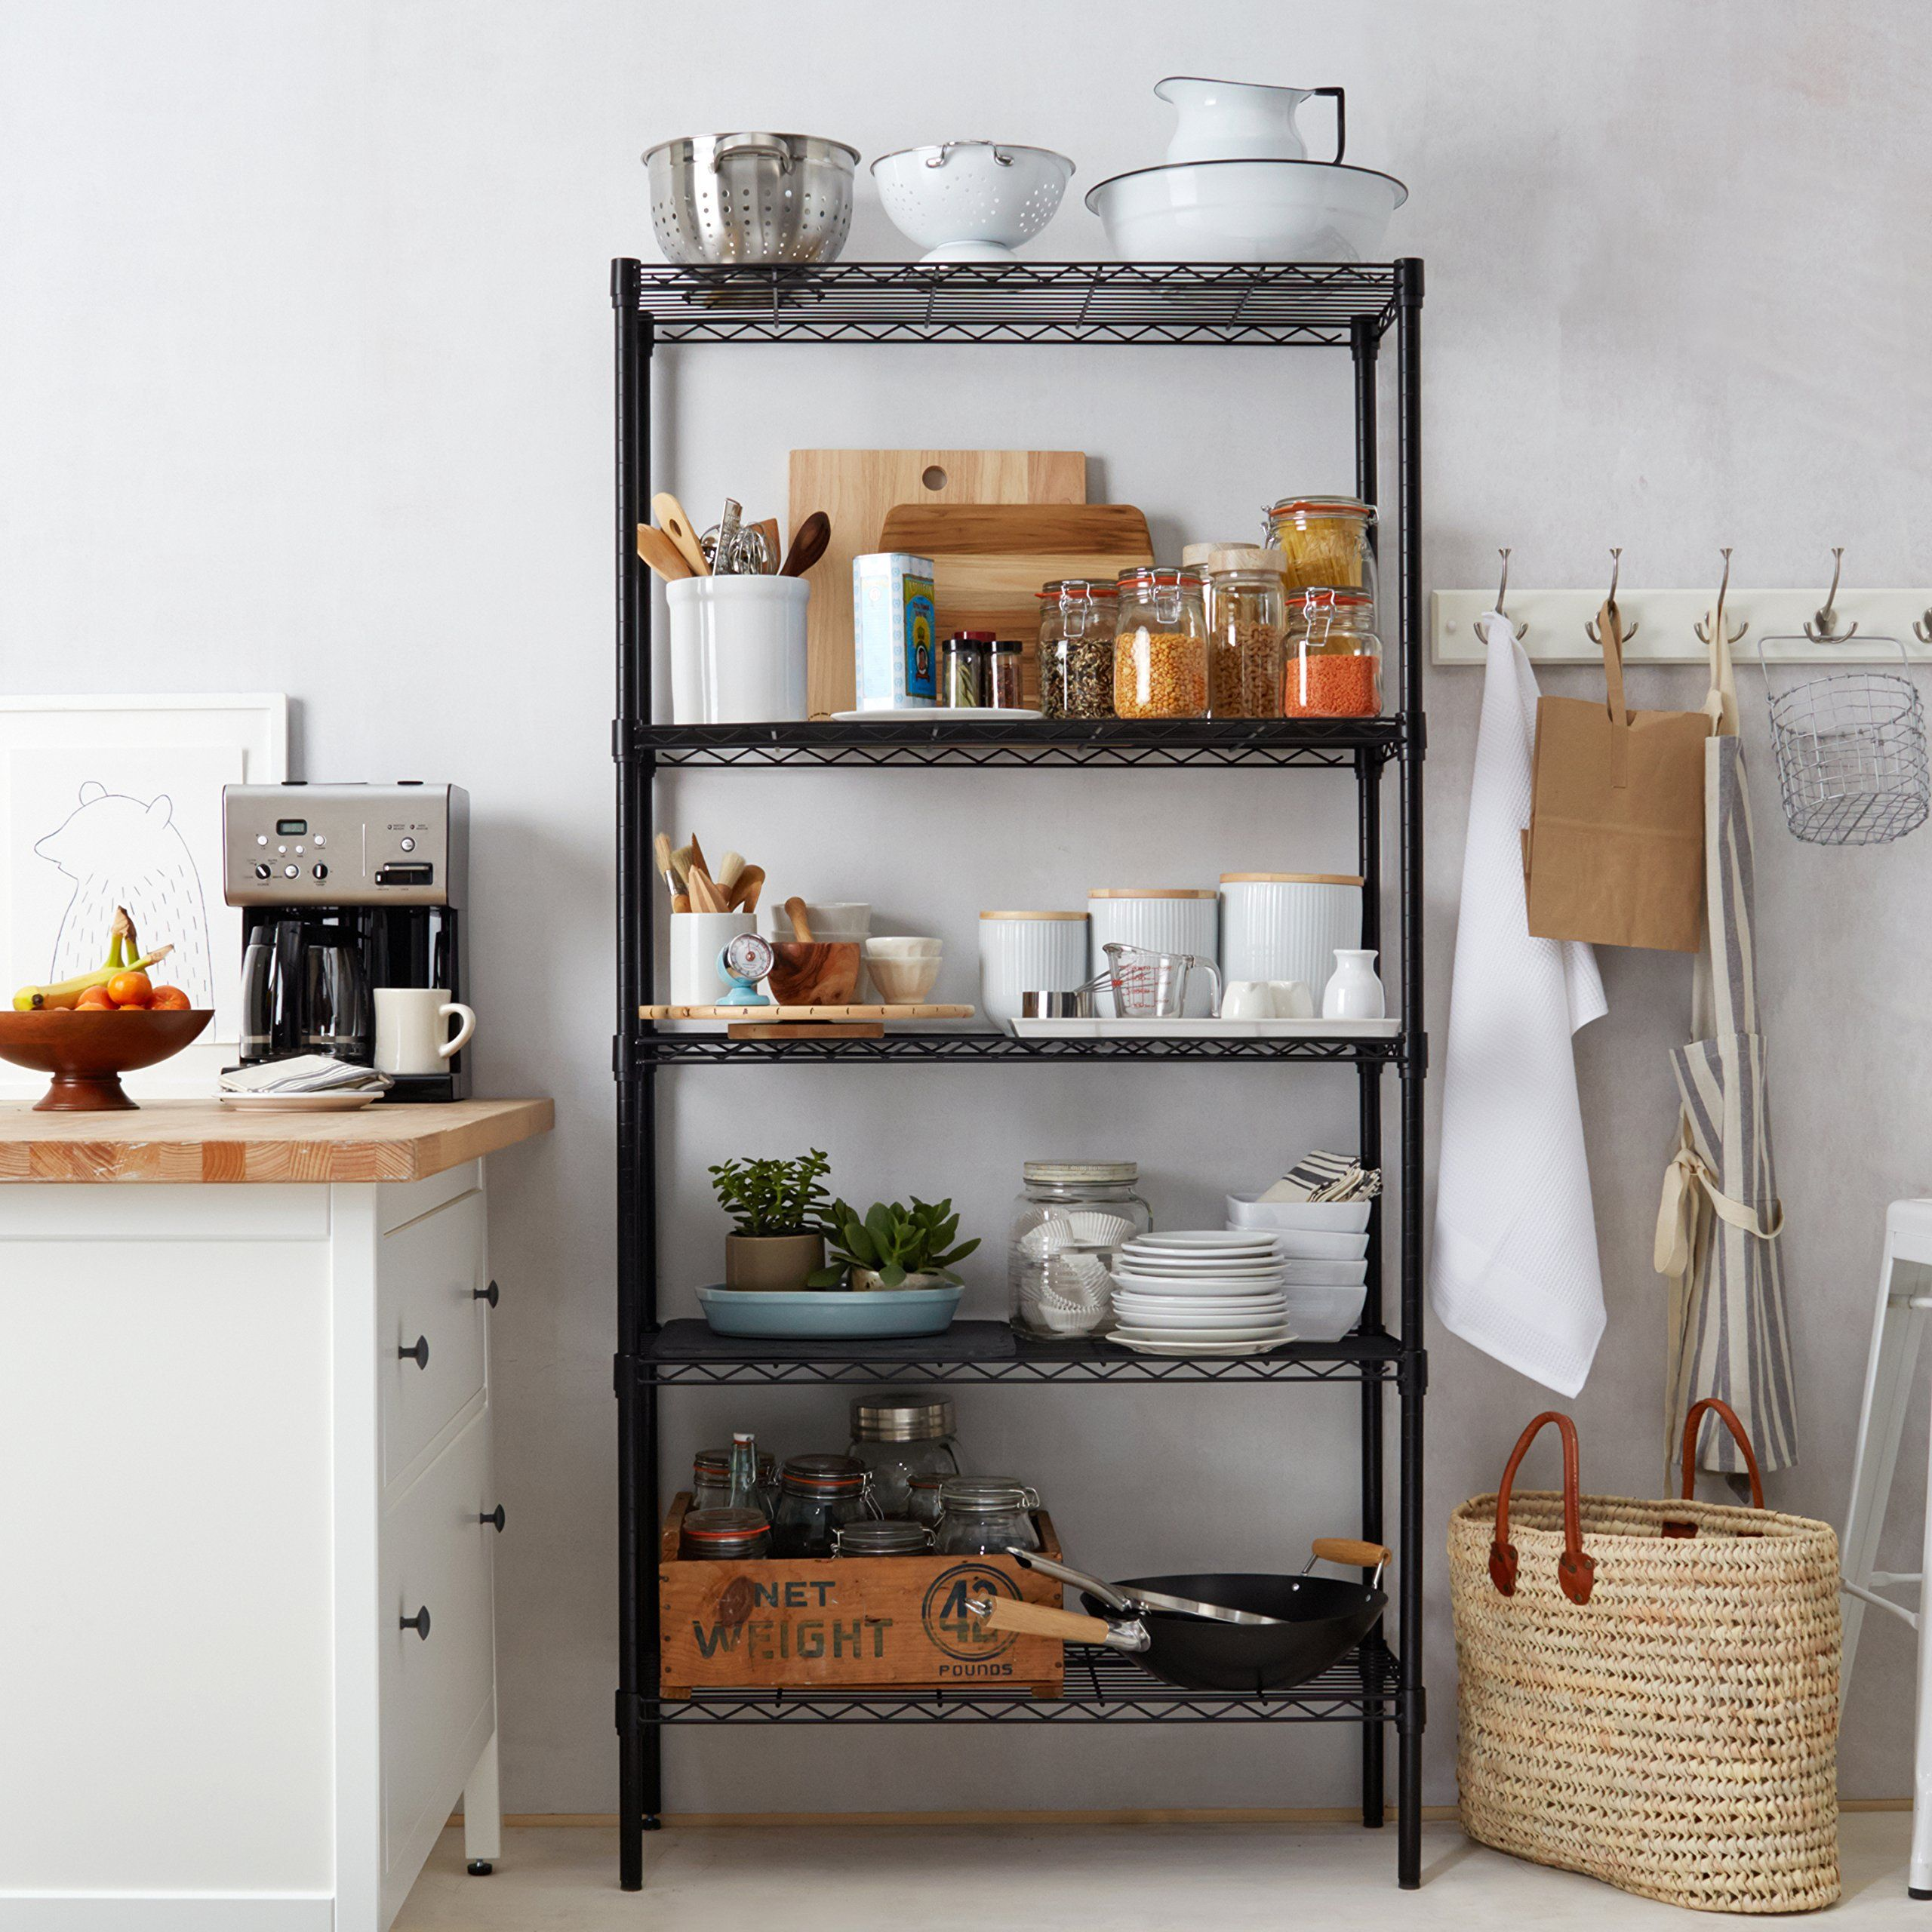 cute idea to replace white shelves in kitchen